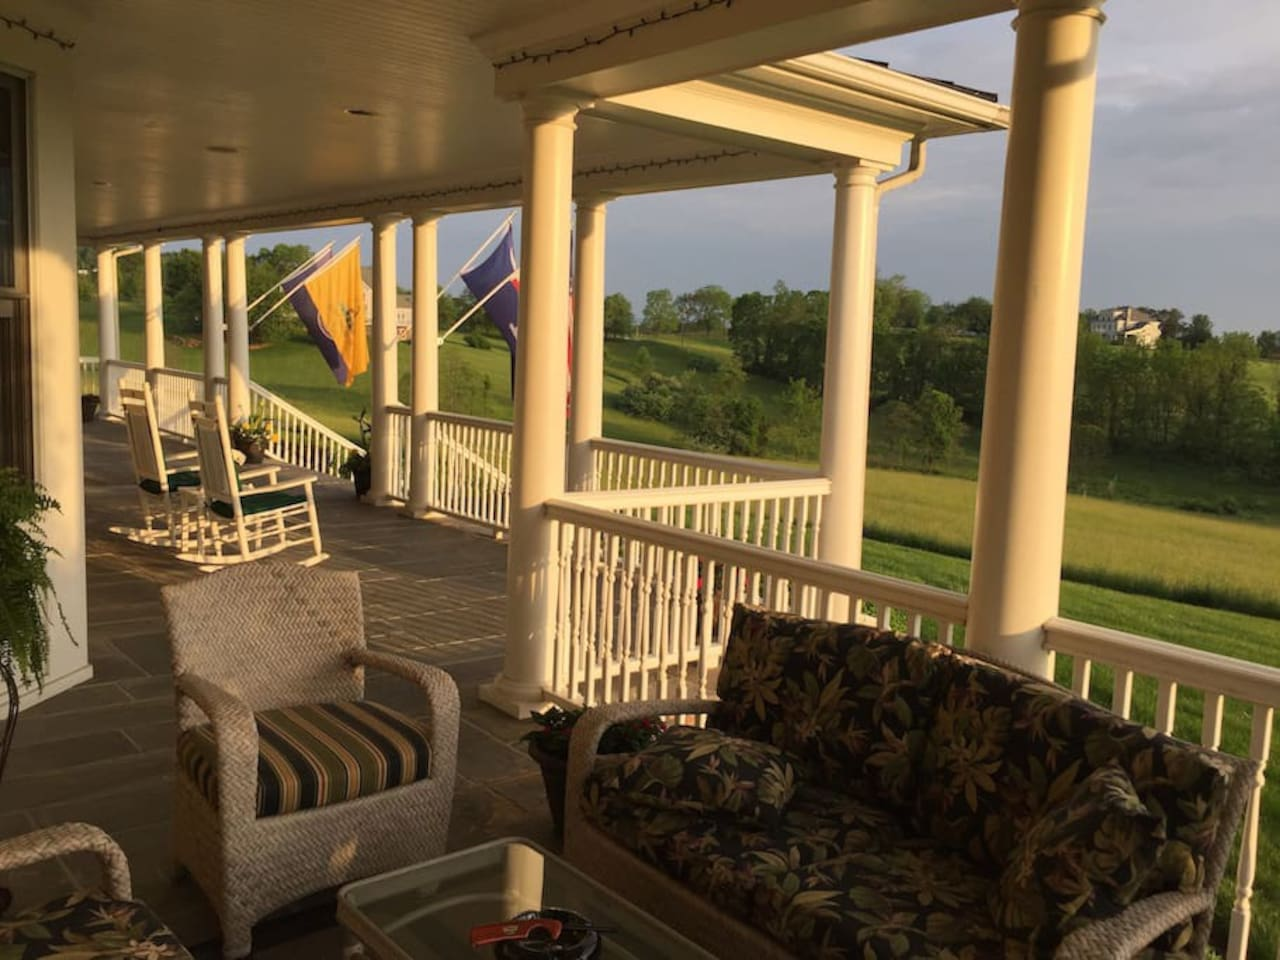 """Bring your glass of wine and enjoy the """"front porch sitting"""""""